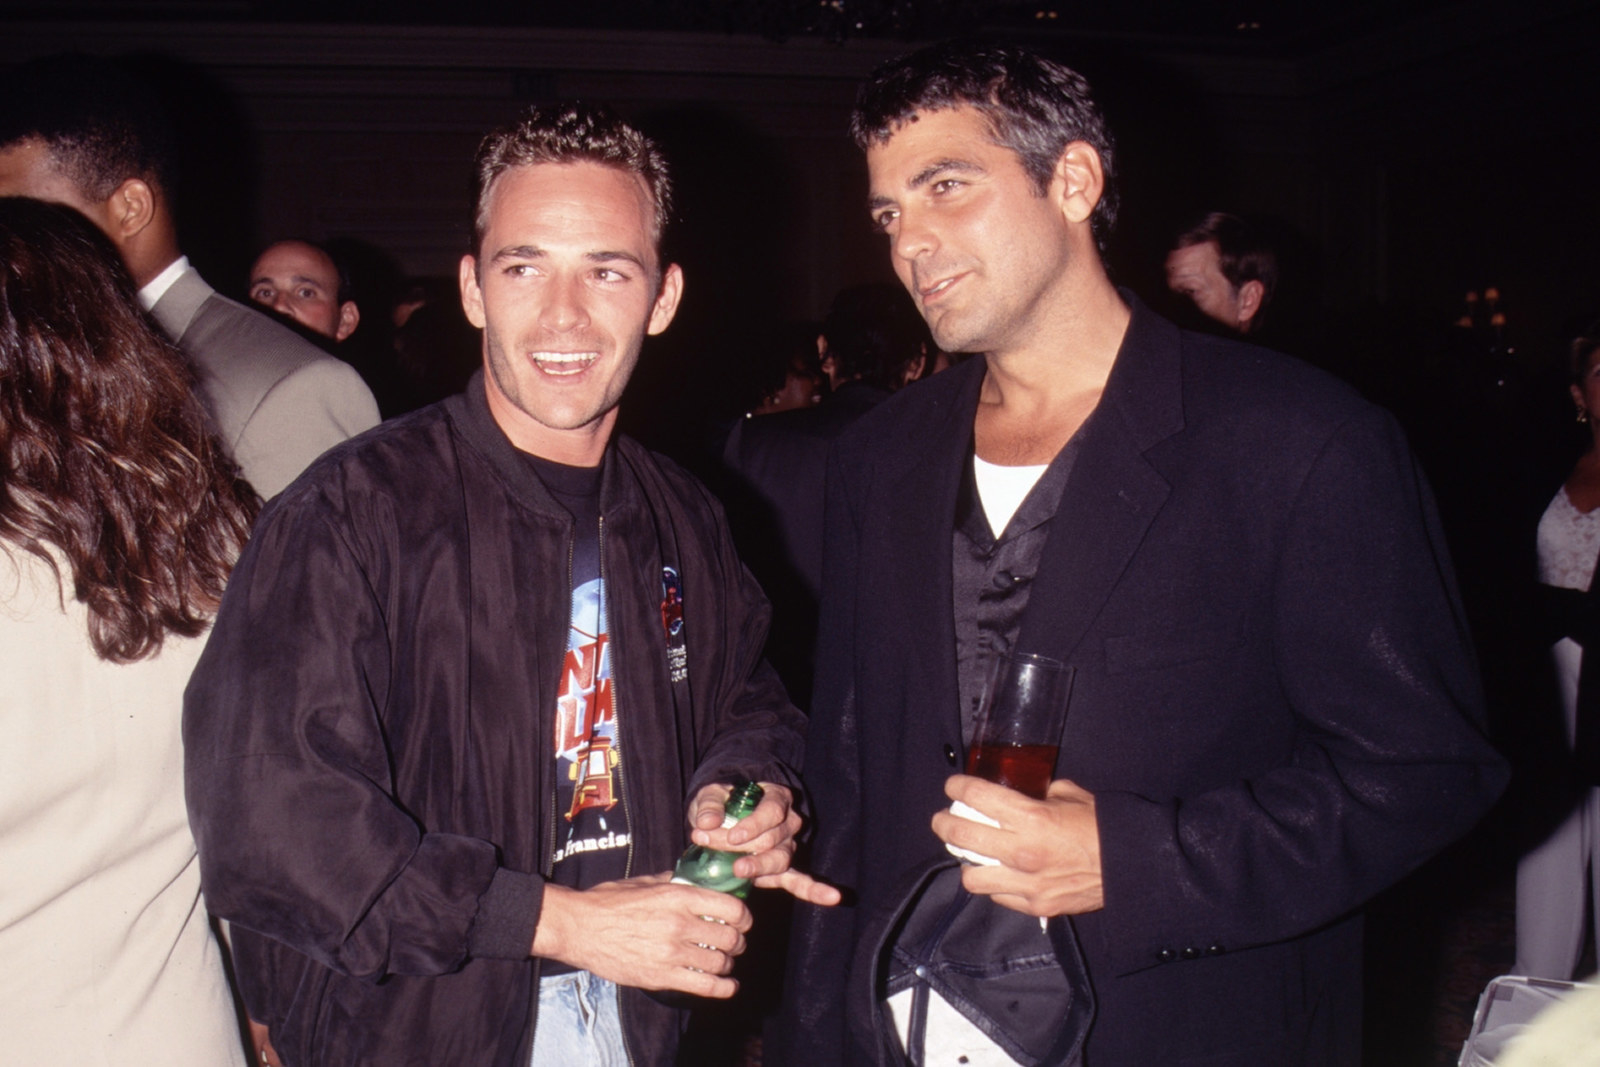 Luke Perry meets George Clooney at a charity event, circa 1990.